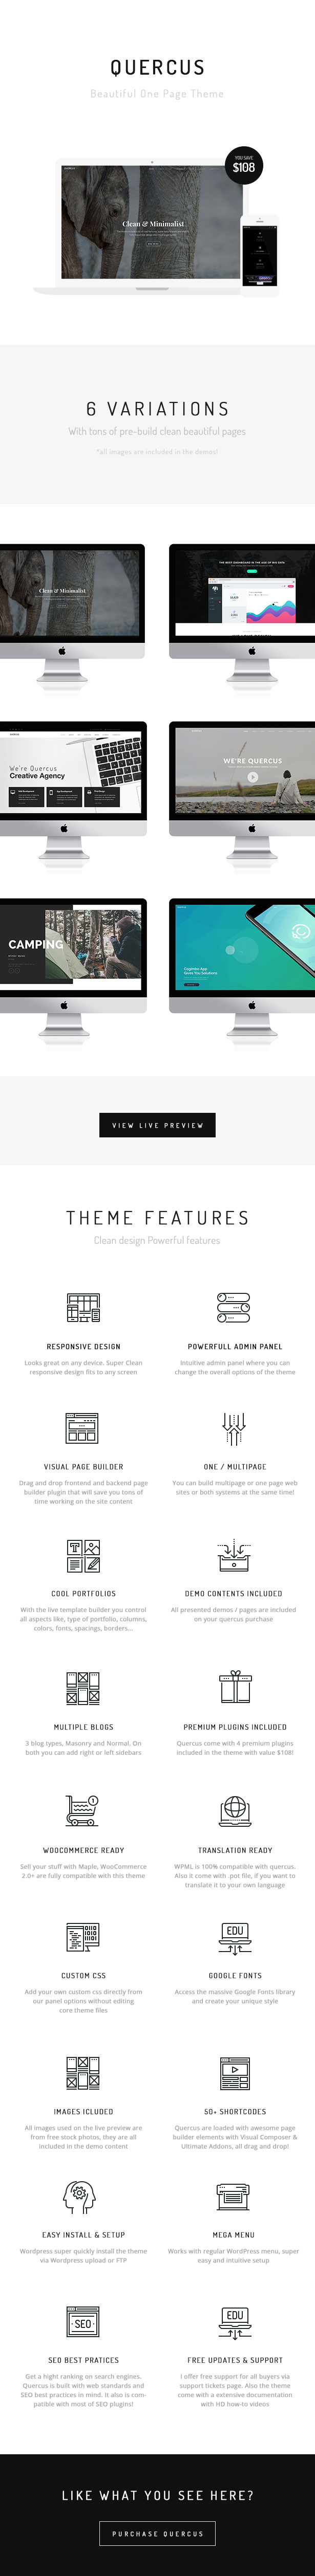 Quercus - Responsive One Page WordPress Template - 1